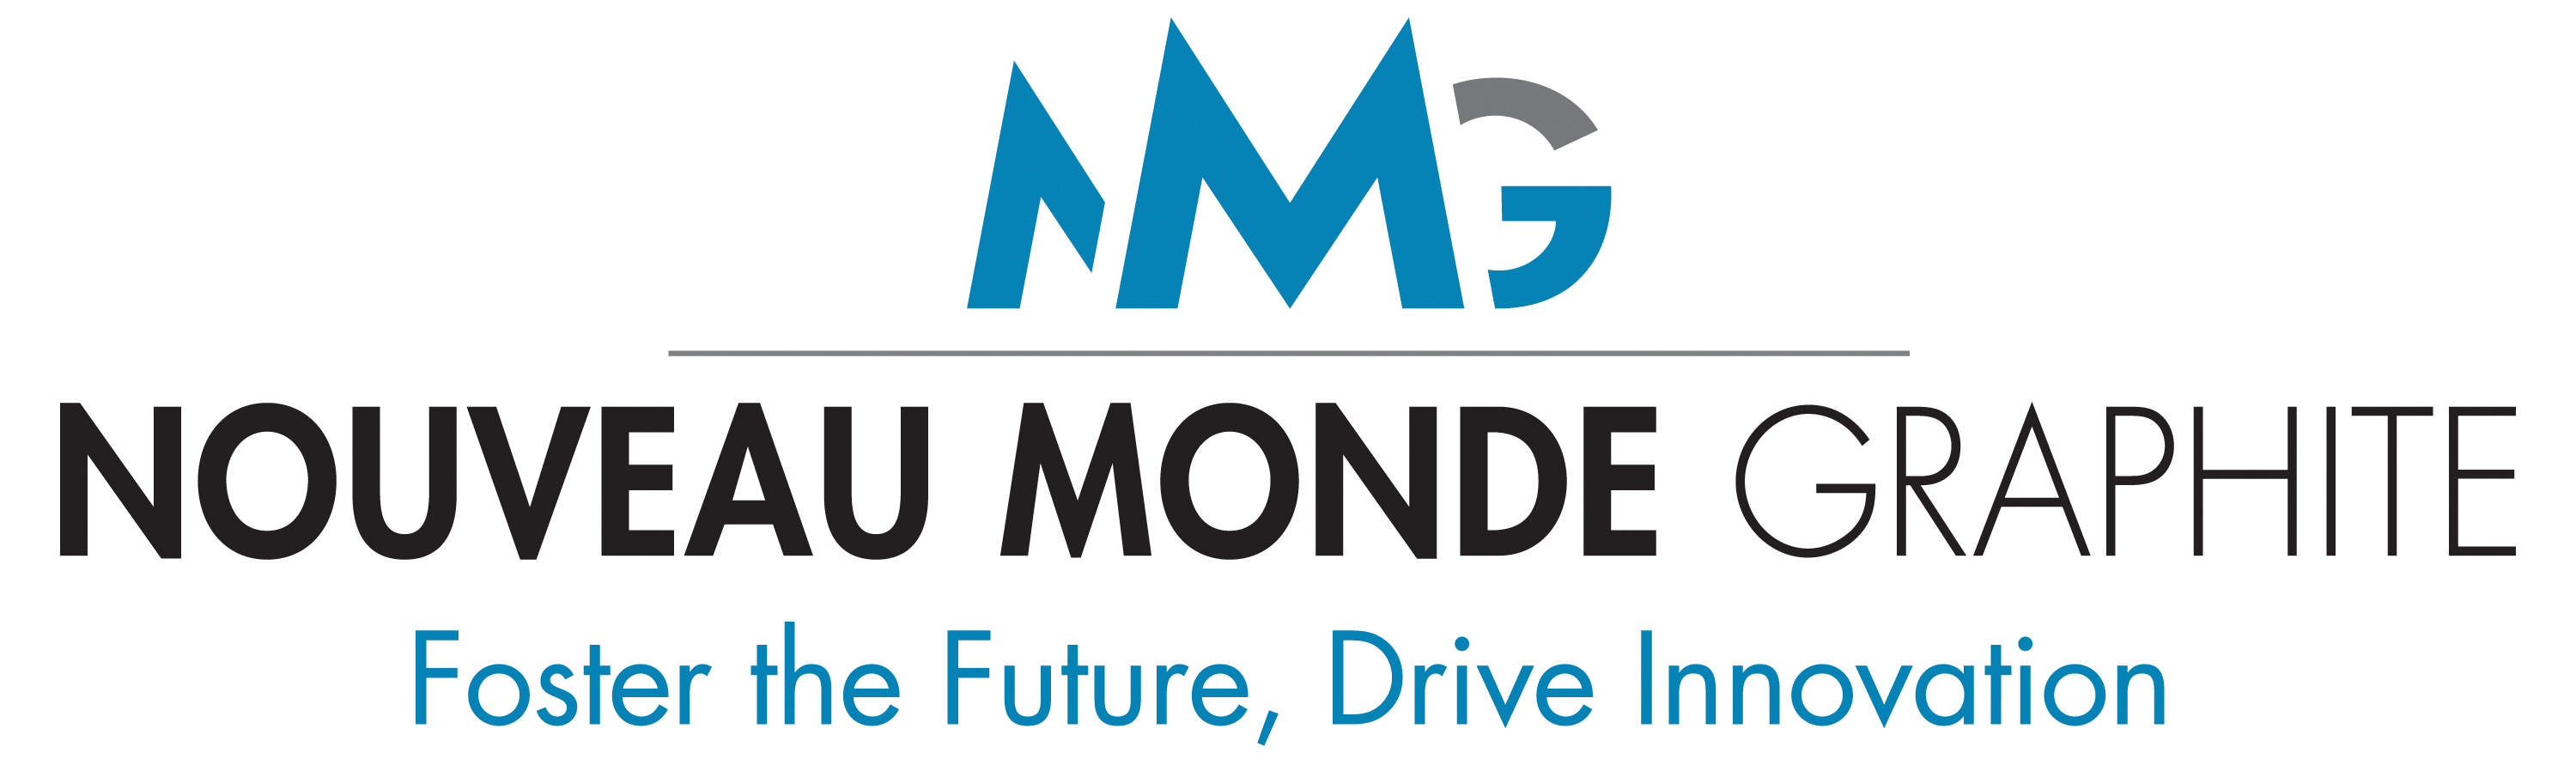 Nouveau Monde Announces the Issuance of Common Shares in Settlement of Interests Owed to a Bondholder